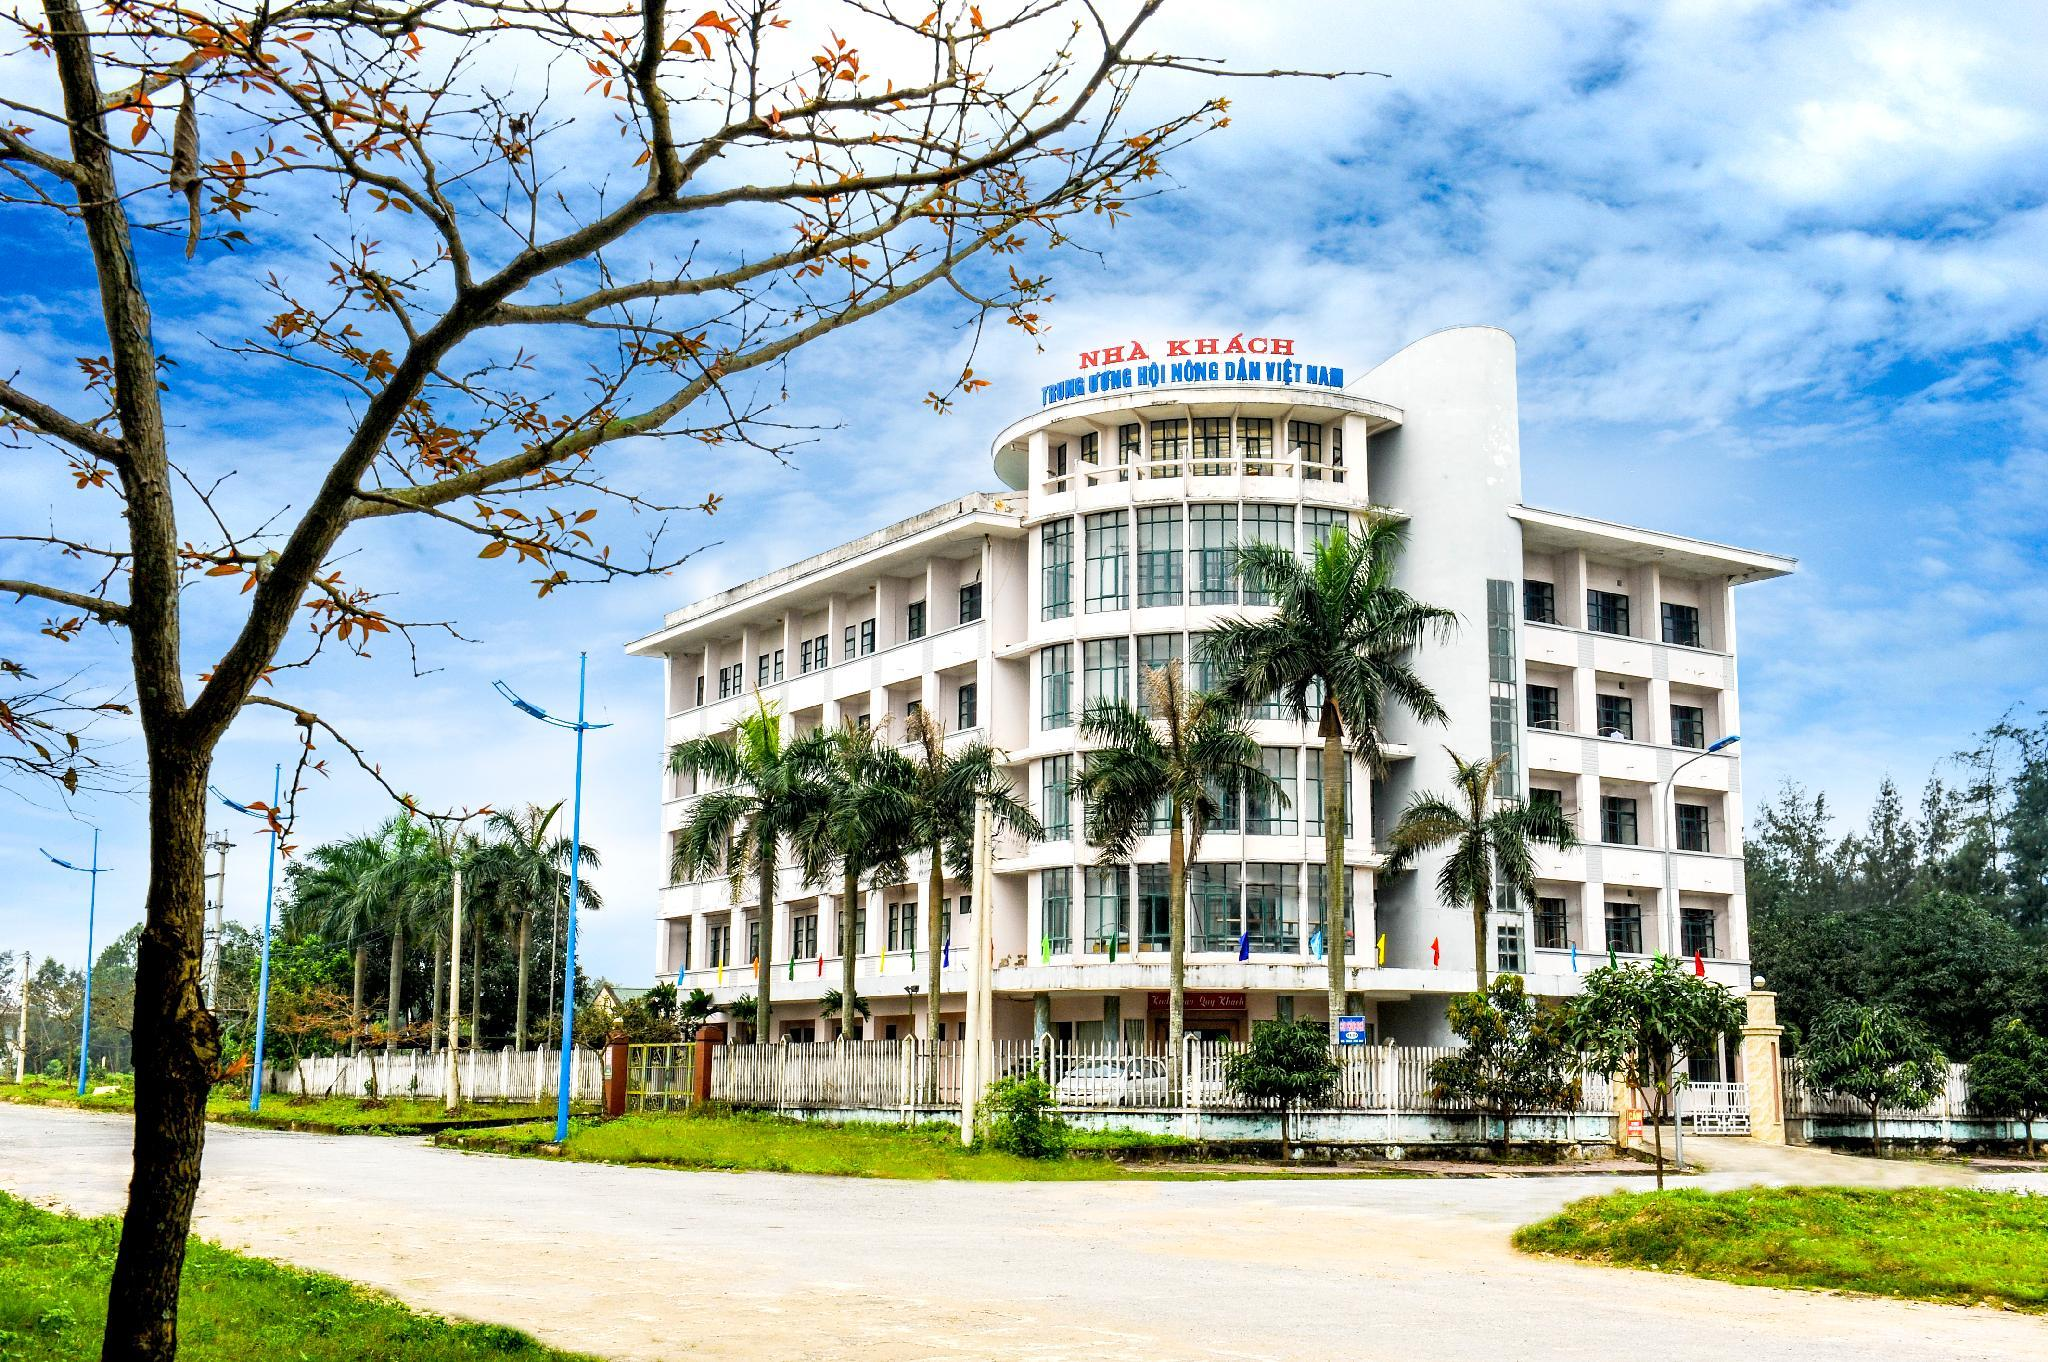 Vietnam Farmers Association Hotel, Cửa Lò